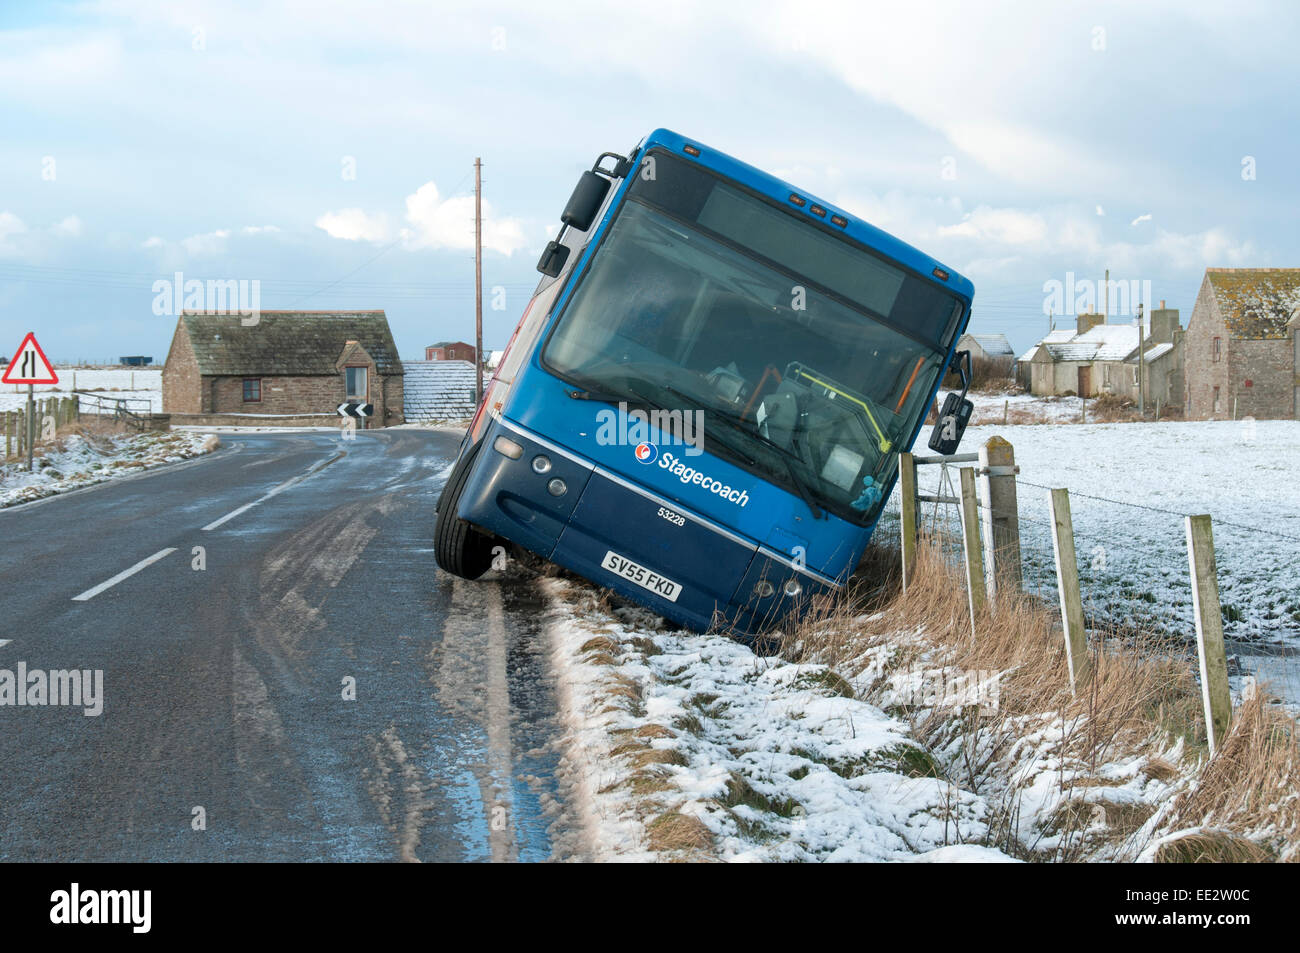 A bus skidded into a ditch after an overnight snowfall and freezing temperatures led to icy conditions on the road. - Stock Image